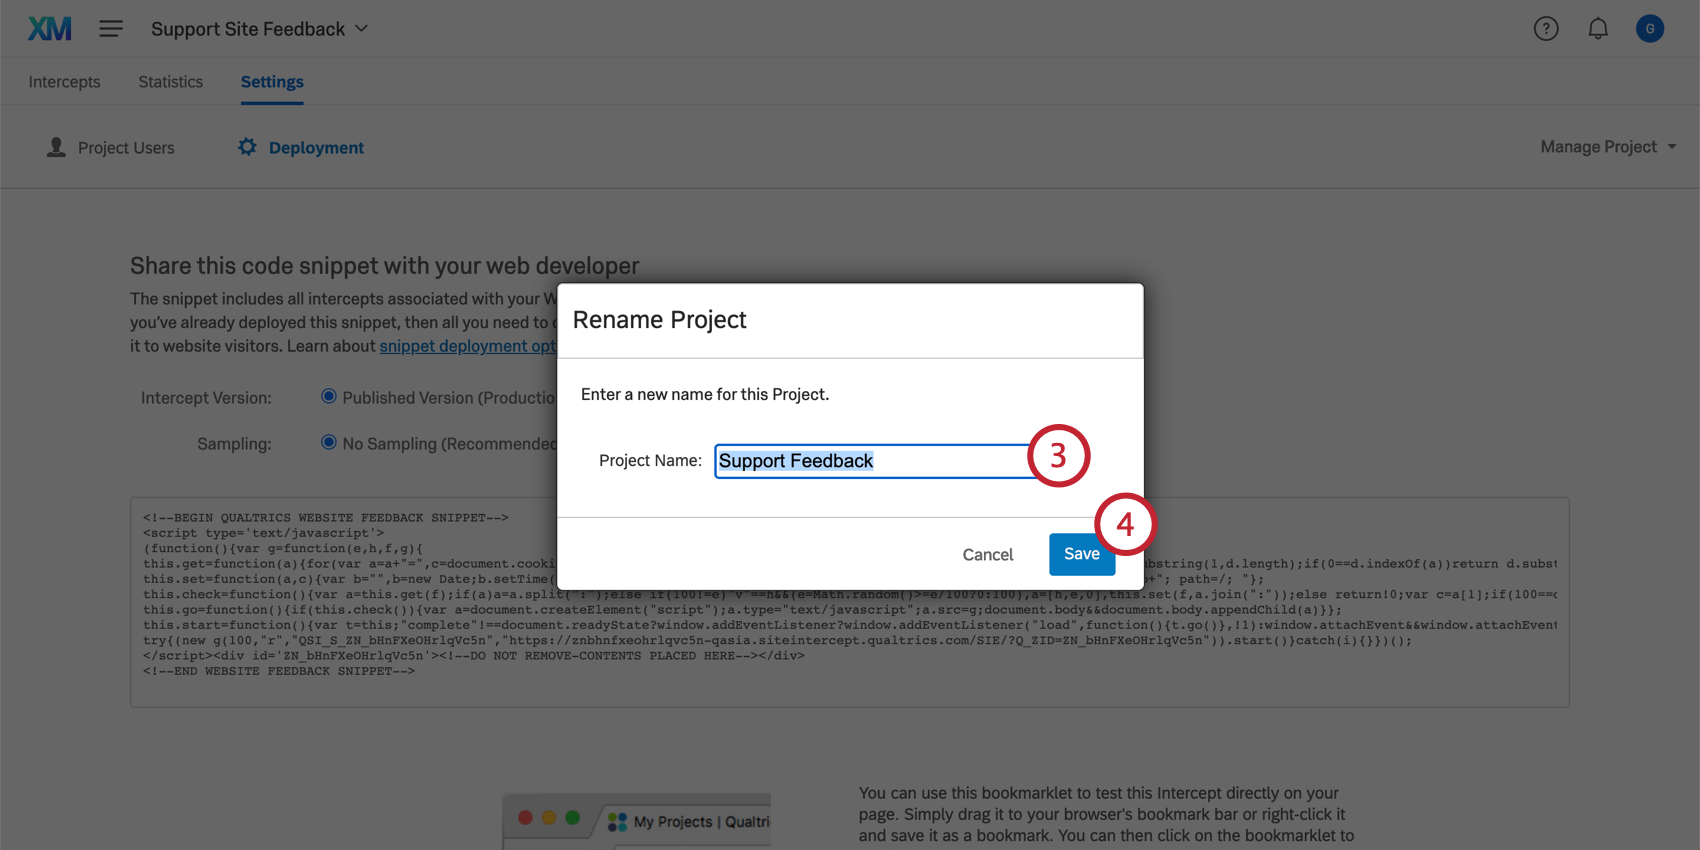 Renaming a project in the Rename Project window